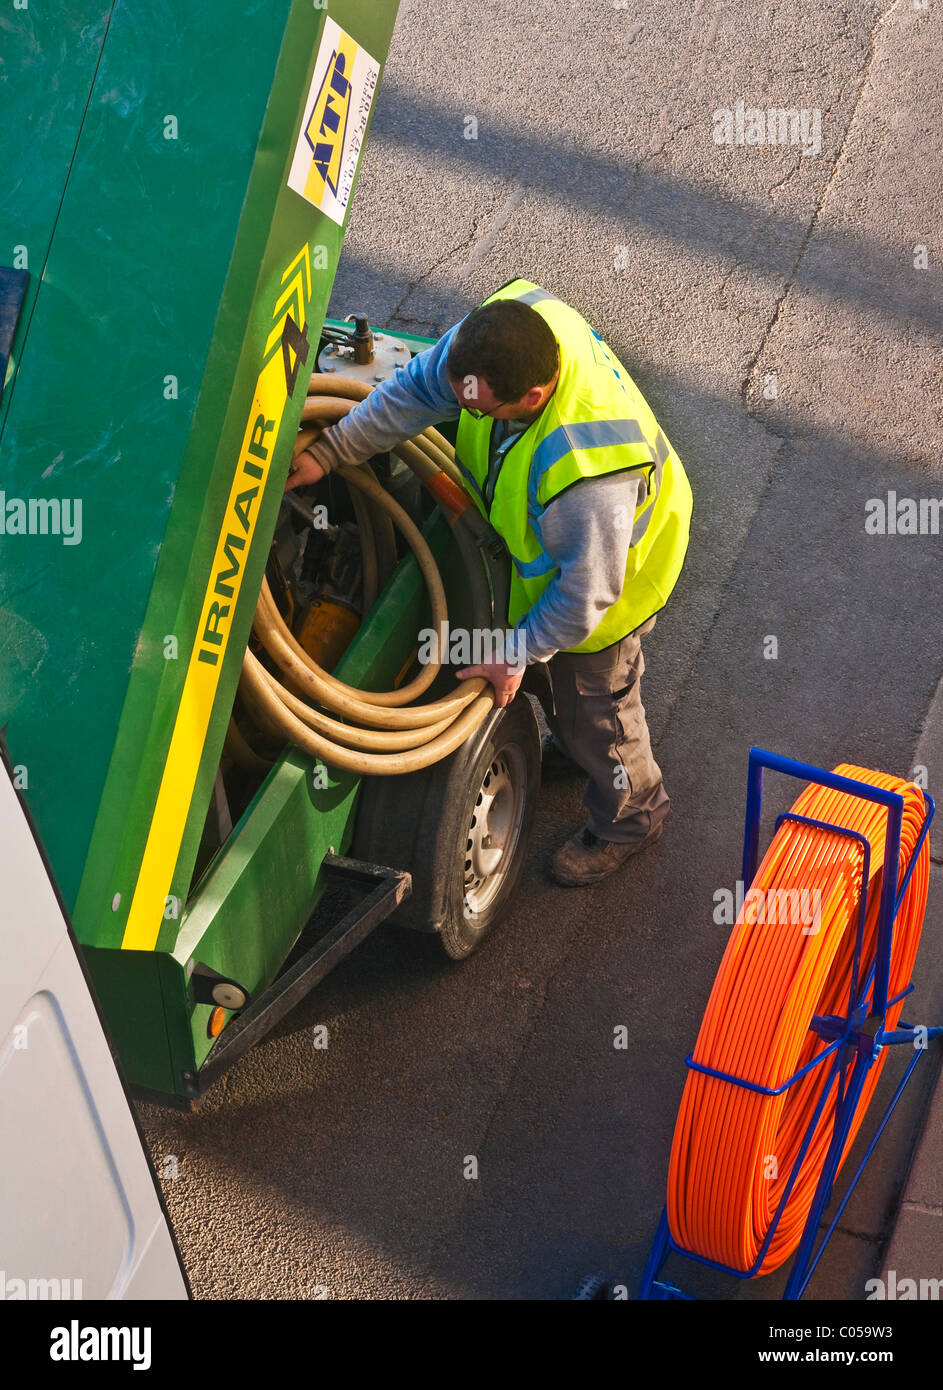 Workman in street coiling pipe - France. - Stock Image